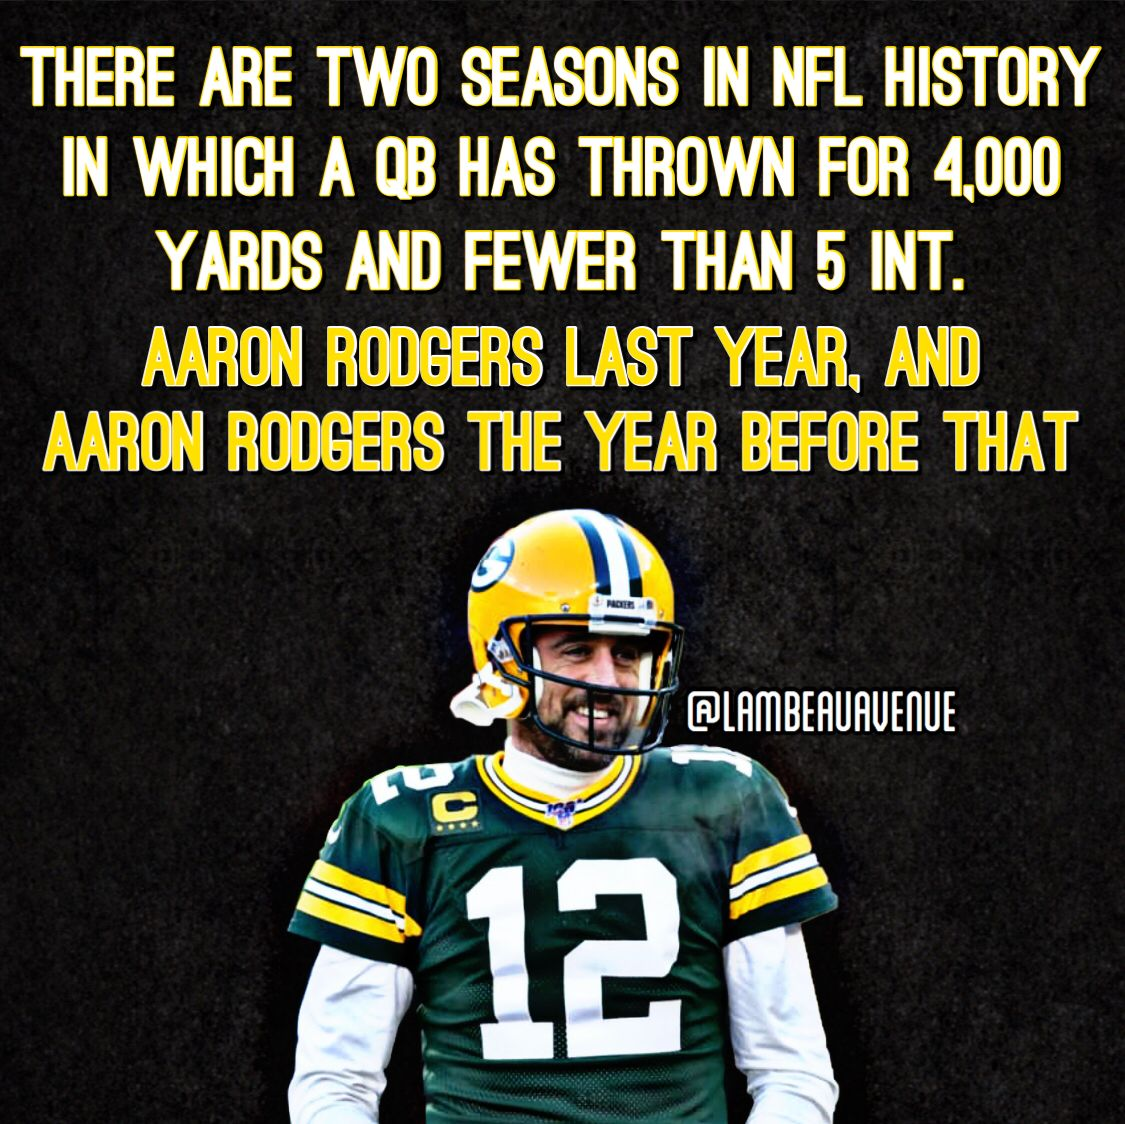 Pin By Deb Vaughan On Packers In 2020 Go Packers Green Bay Packers Nfl History